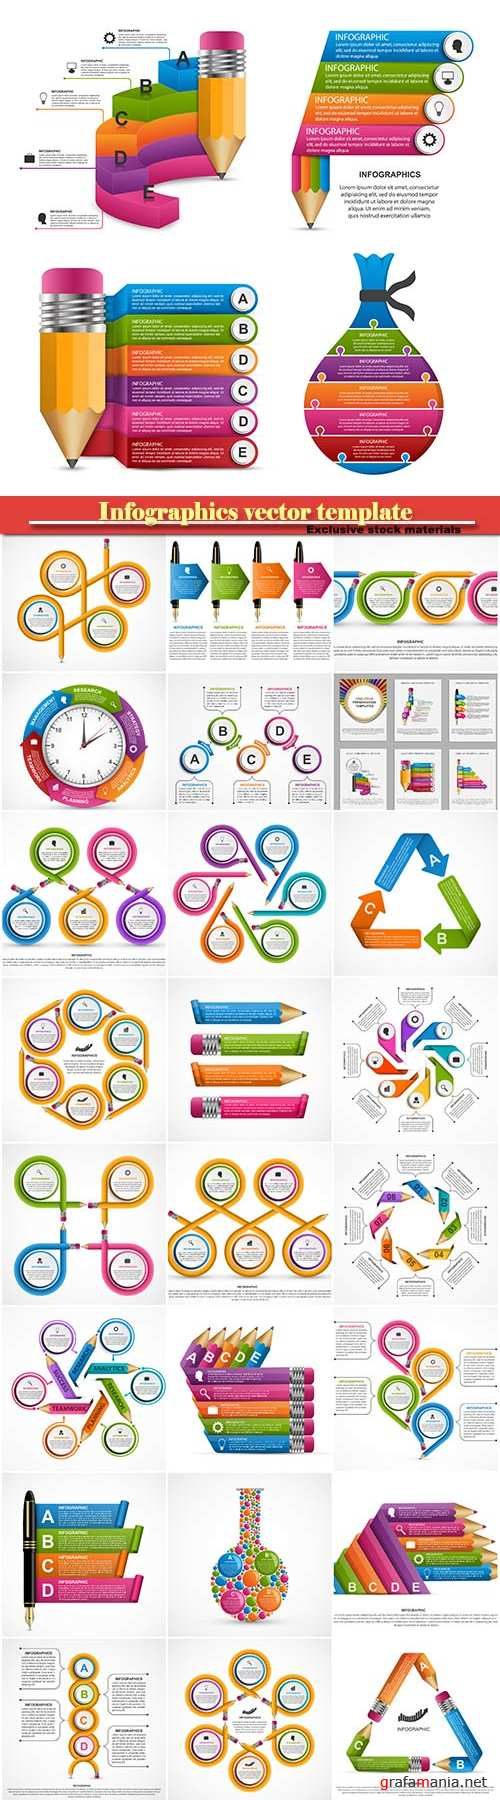 Infographics vector template for business presentations or information banner